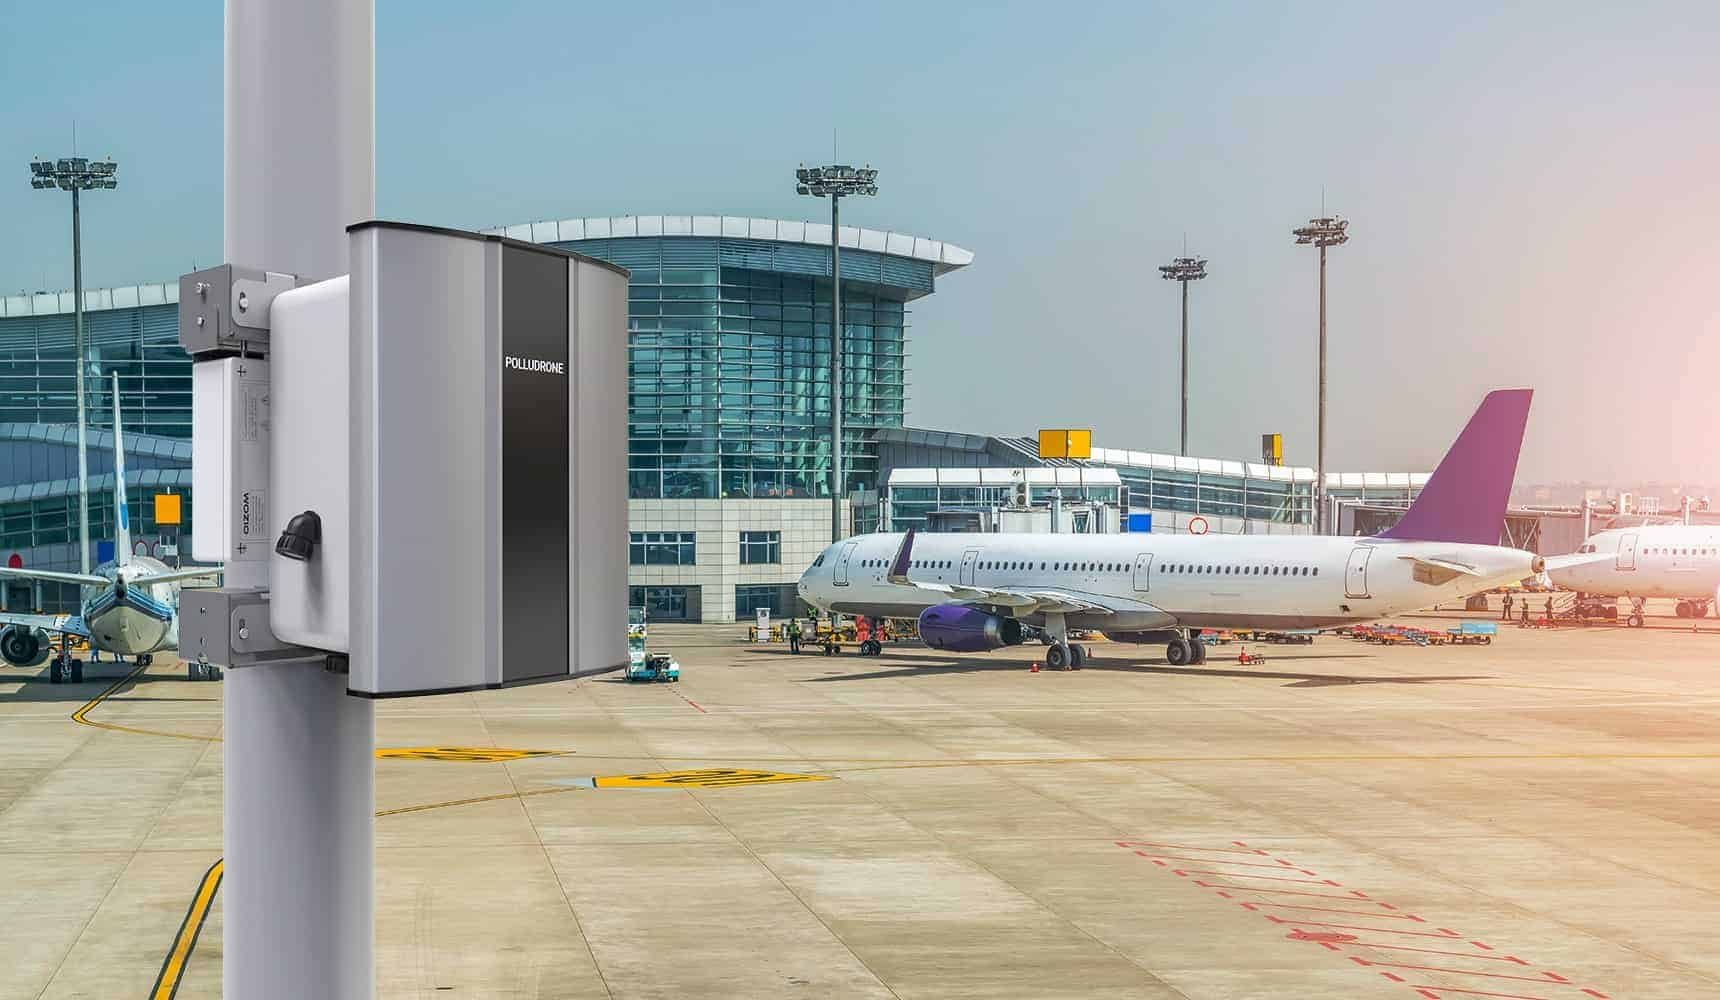 Polludrone Air Pollution Monitoring System can monitor airport pollution to aware travellers for taking precautionary actions.